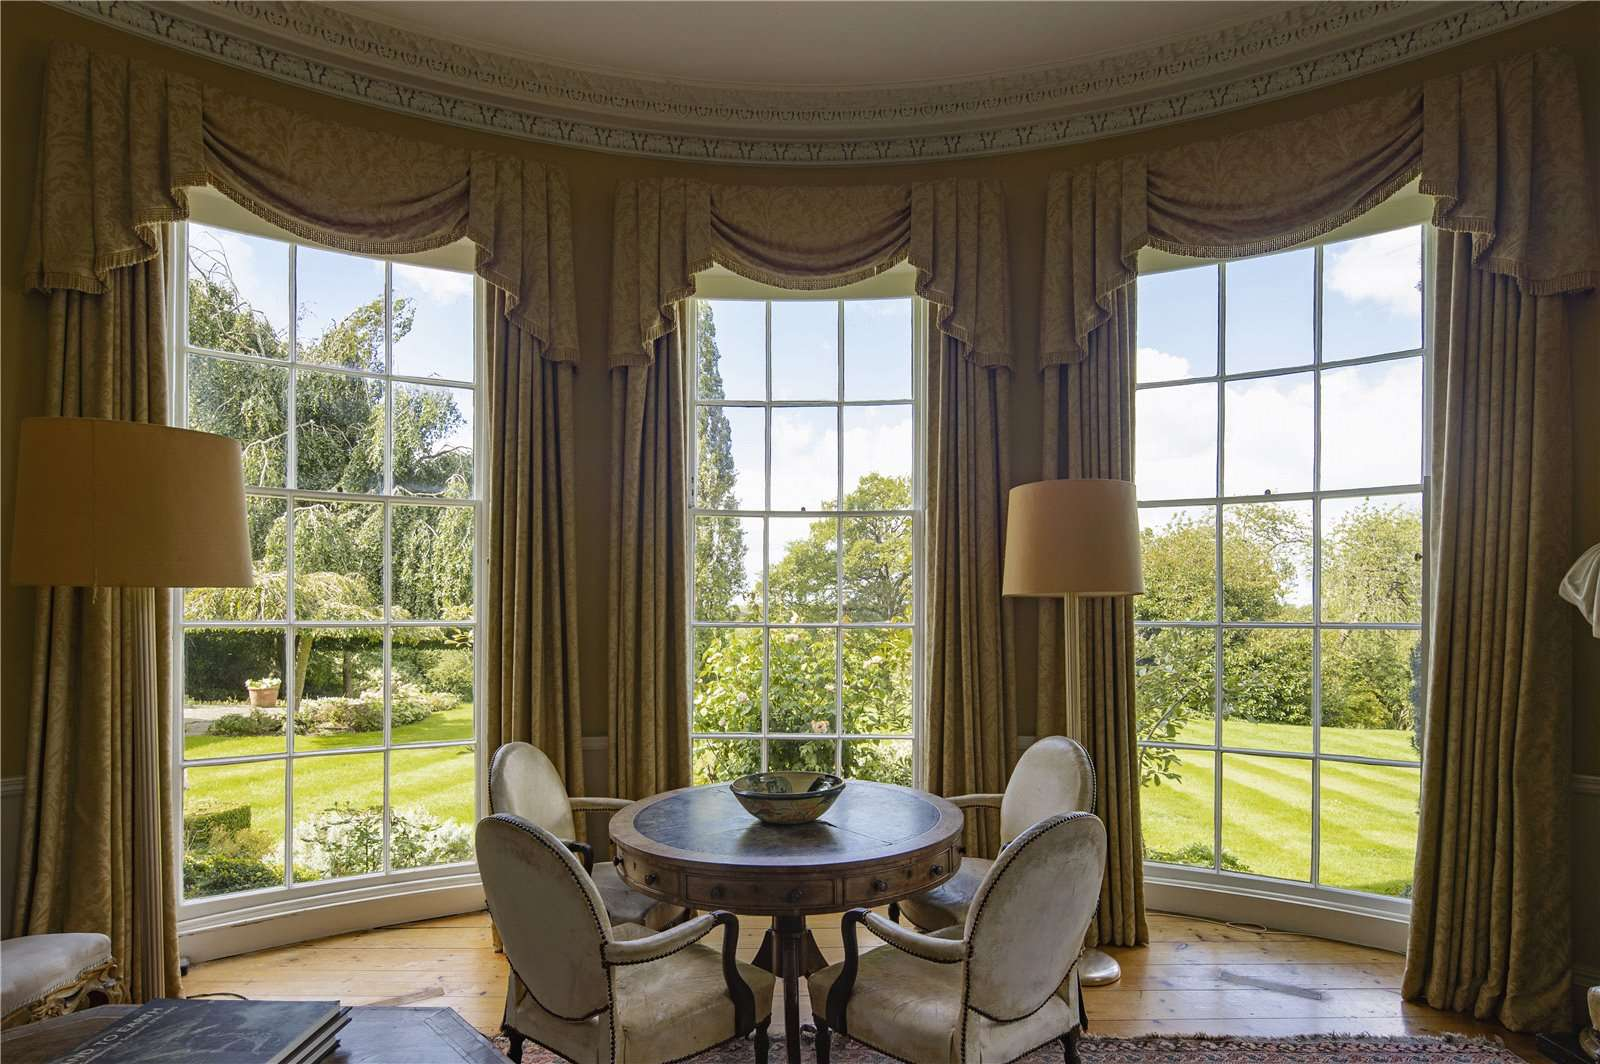 Beauforest House, Wallingford - Image Gallery 06 - Drawing Room